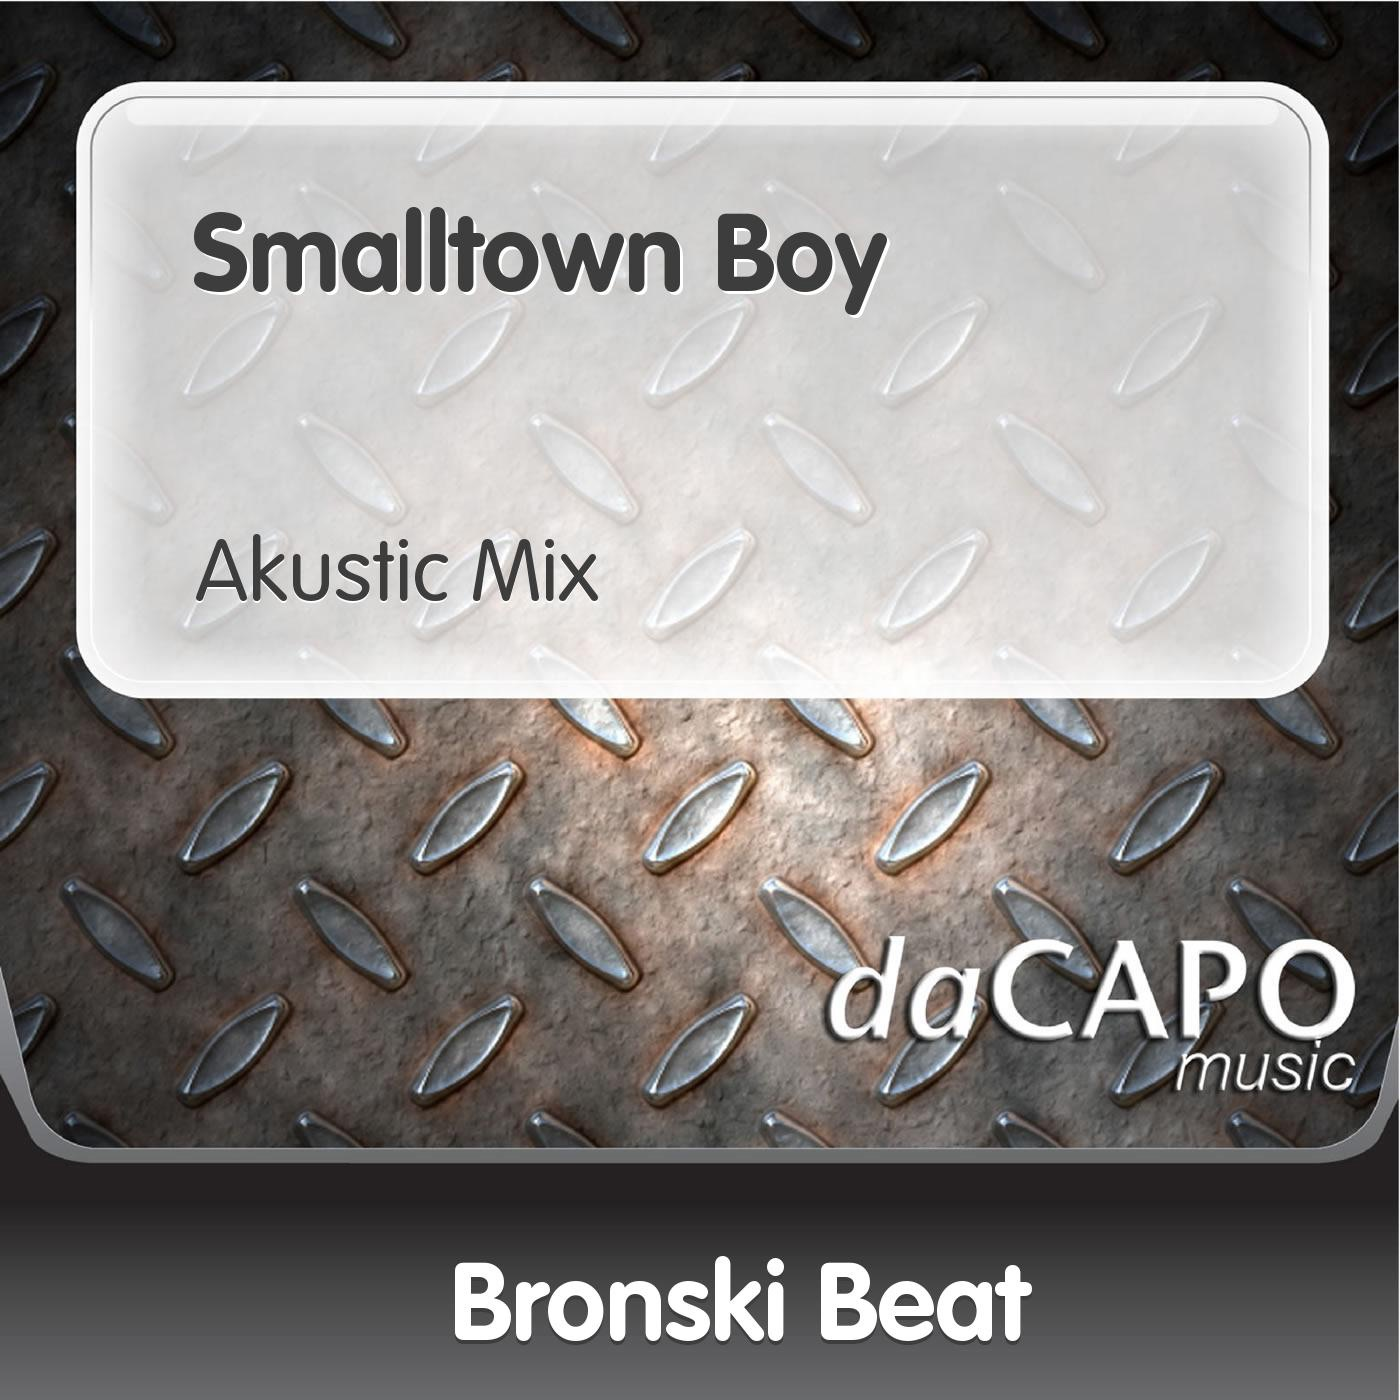 Smalltown Boy (Akustic Mix) - Single